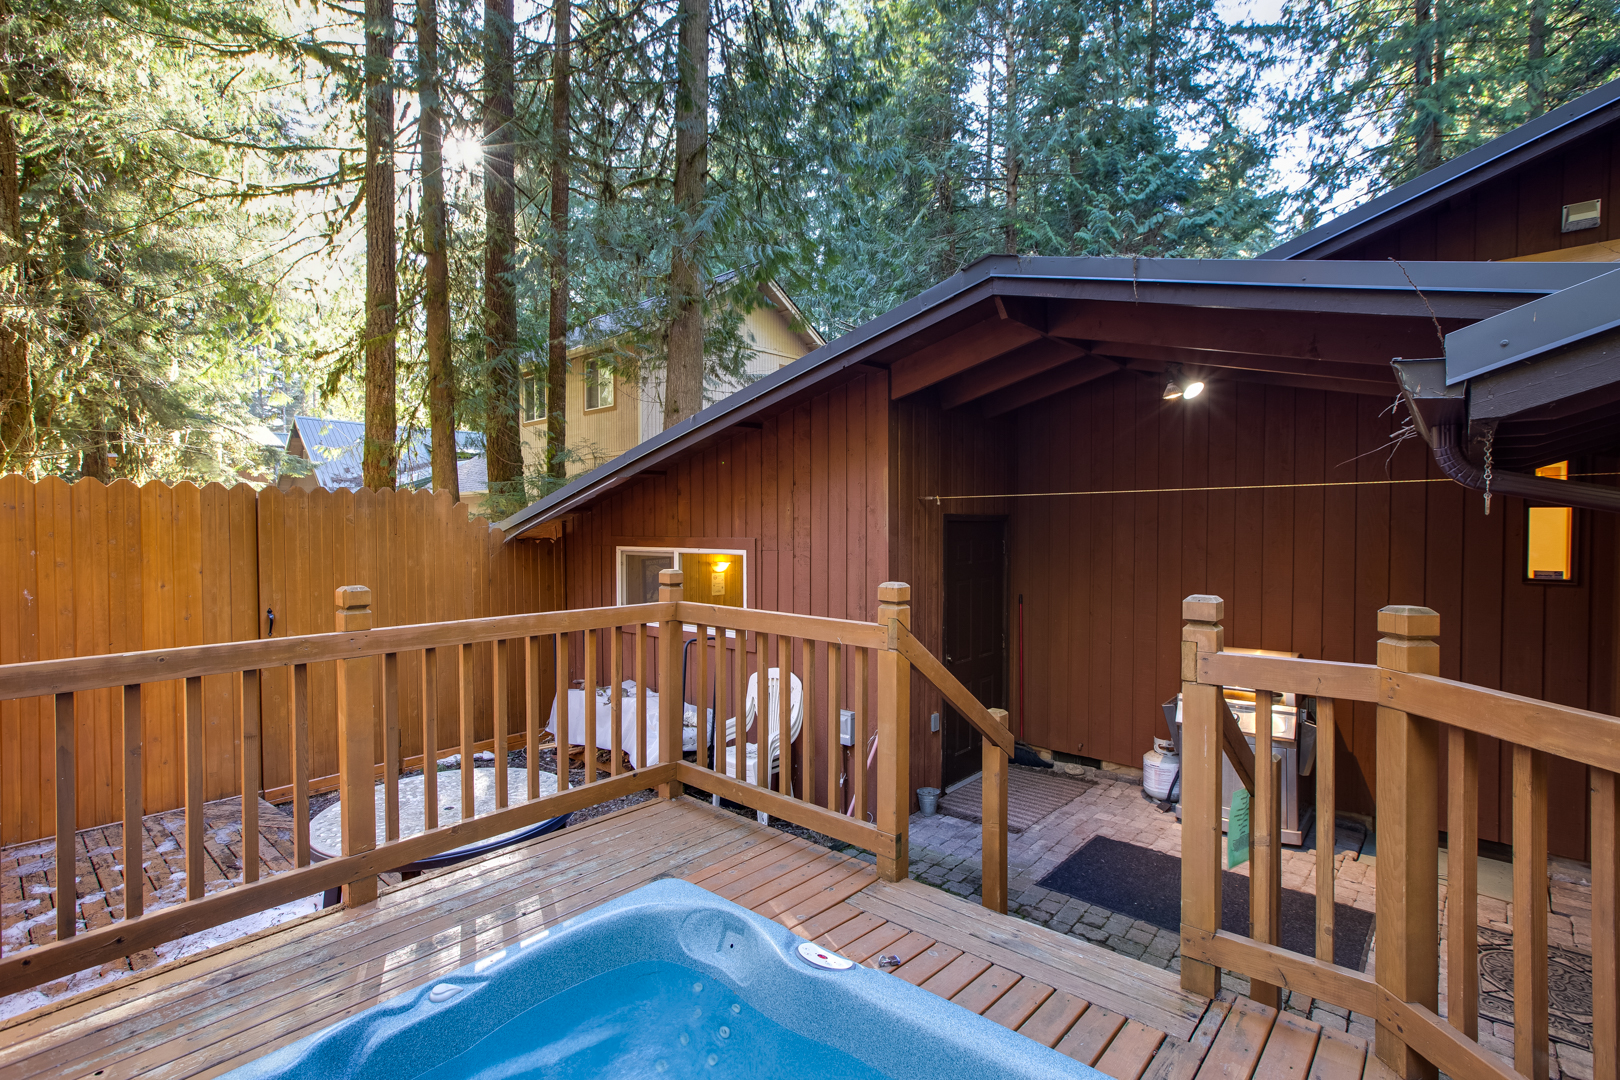 Another view of hot tub area